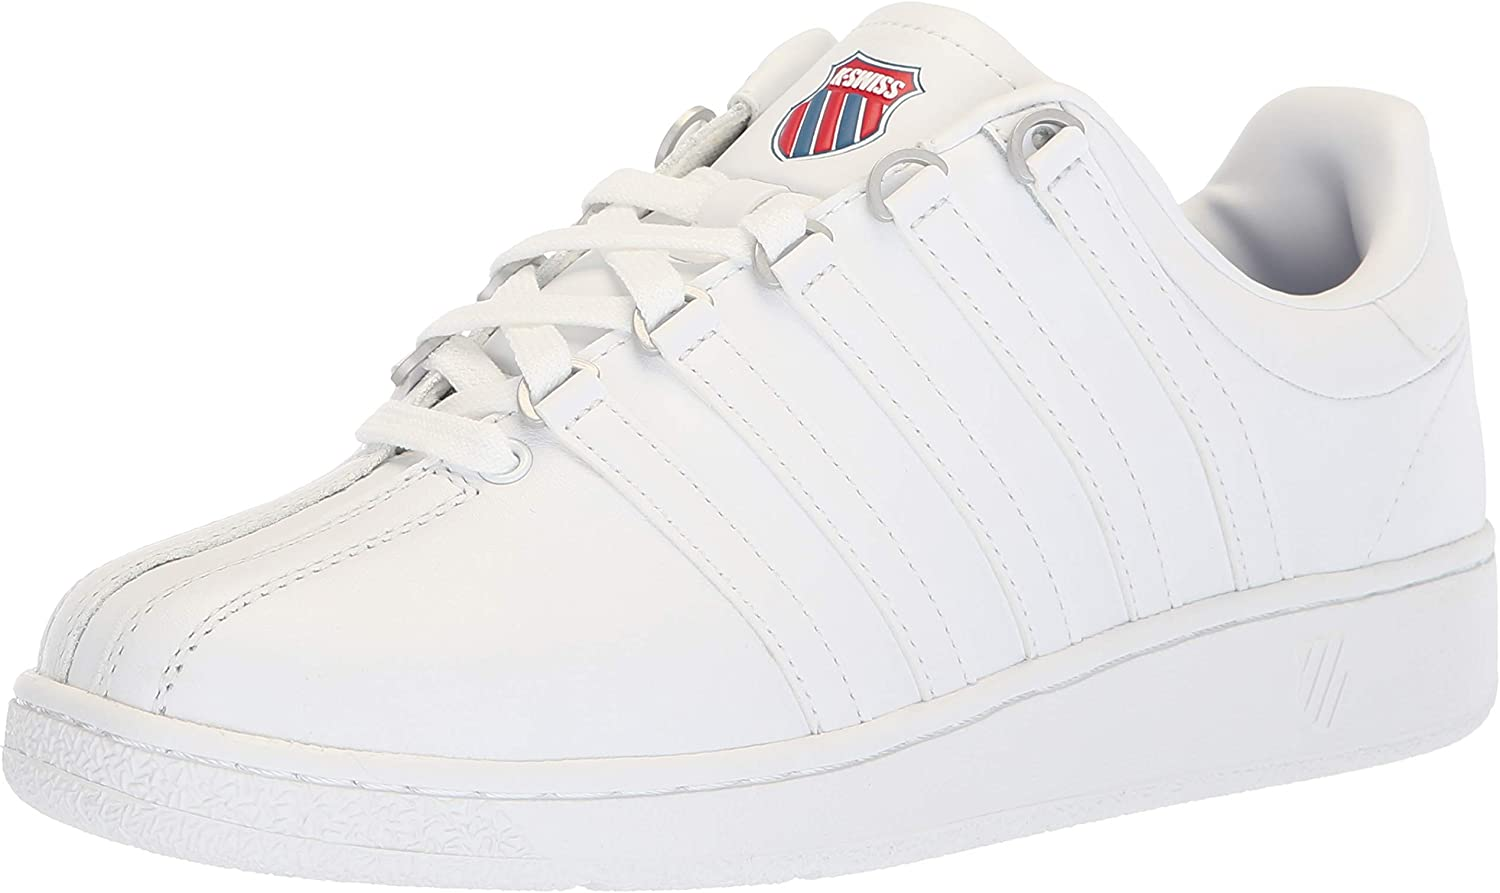 Retro Sneakers, Vintage Tennis Shoes K-Swiss Mens Classic Vn Heritage Sneaker $39.99 AT vintagedancer.com